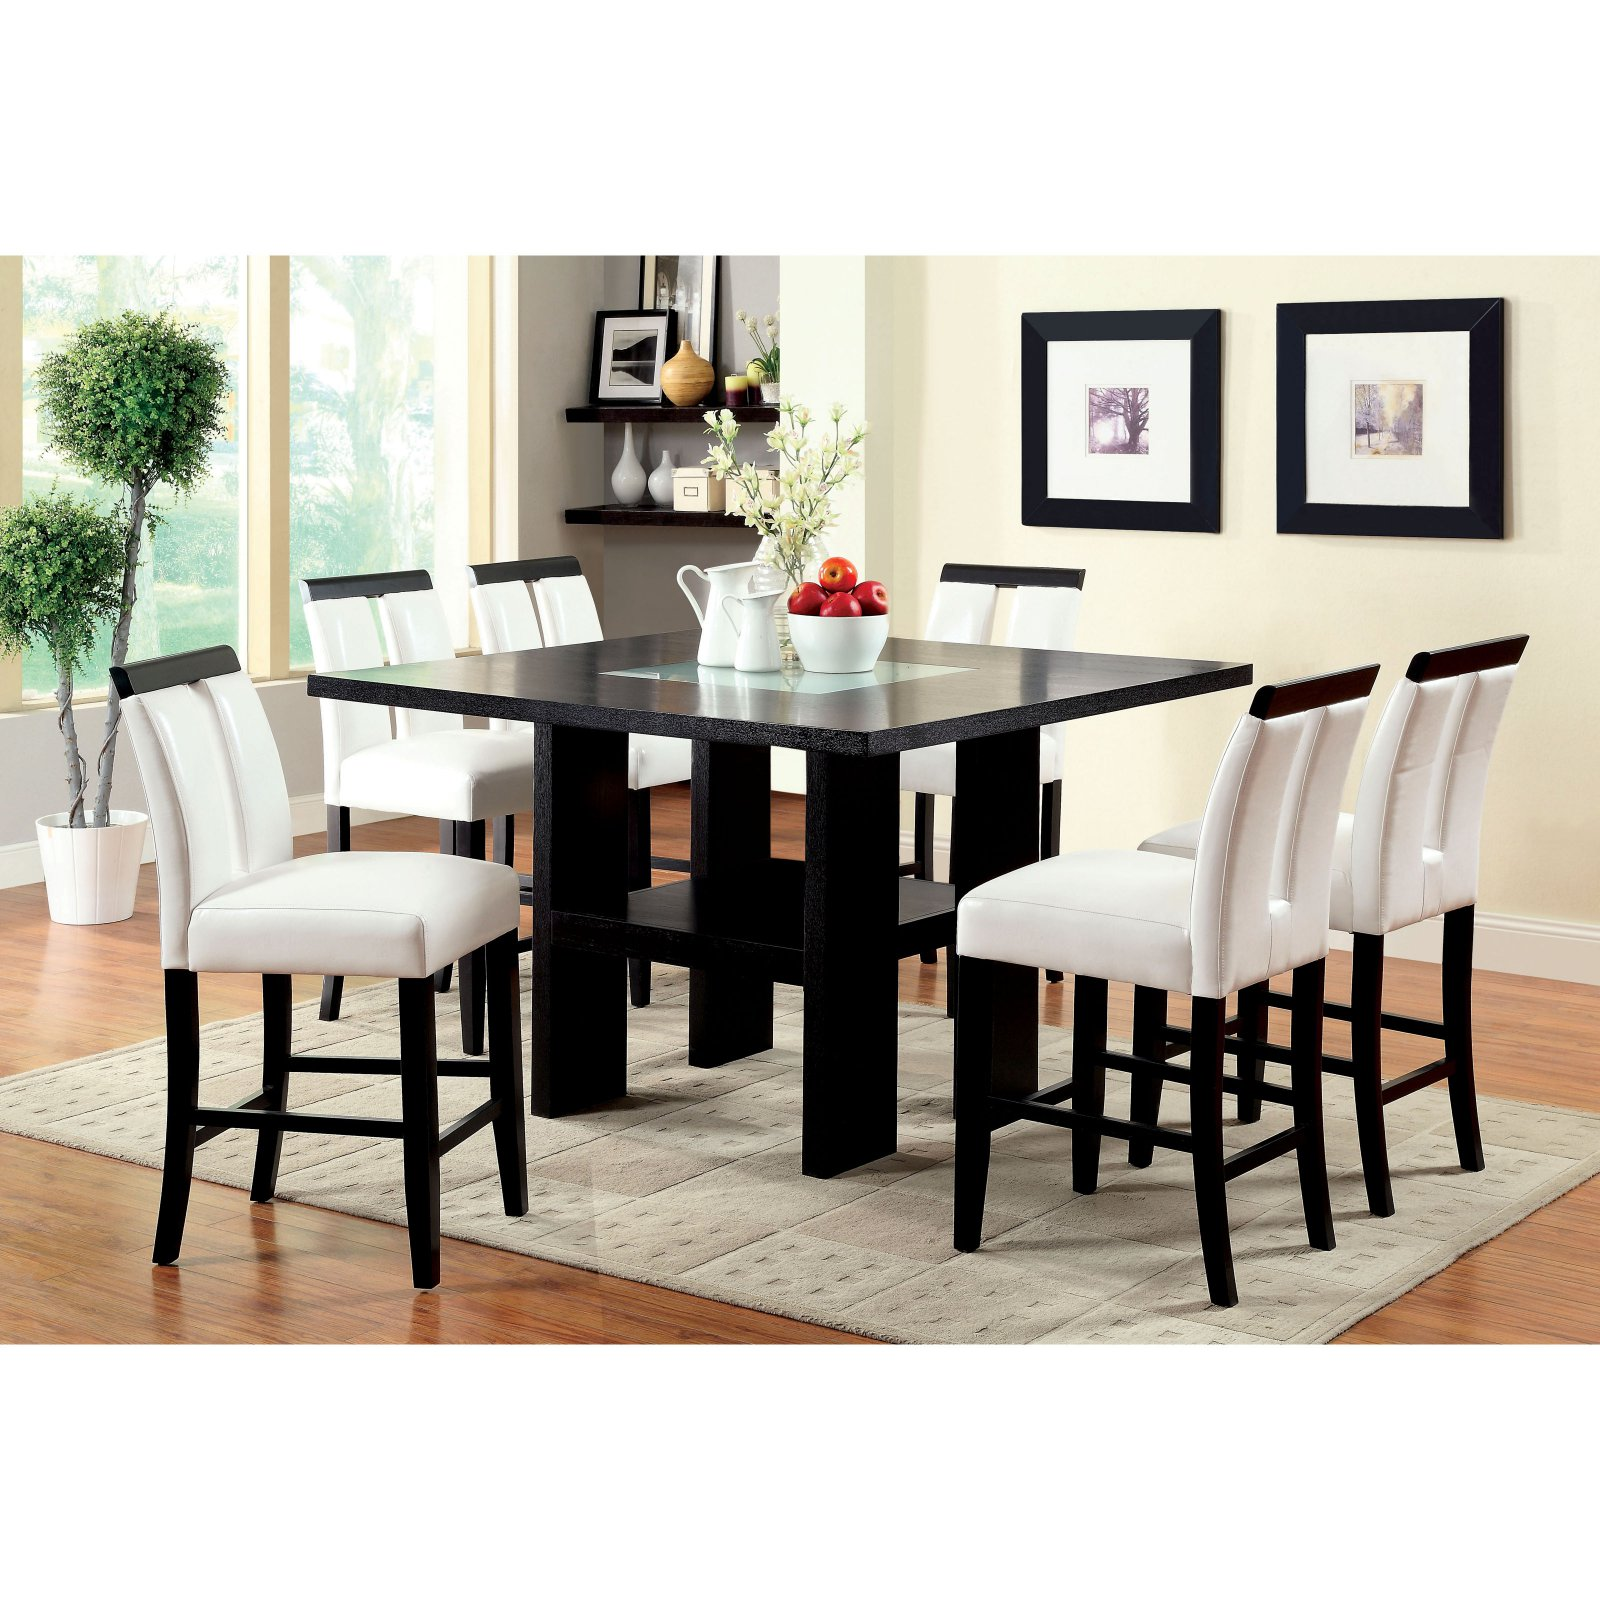 Charmant Furniture Of America Luminate Contemporary 7 Piece Illuminating Counter  Height Dining Set